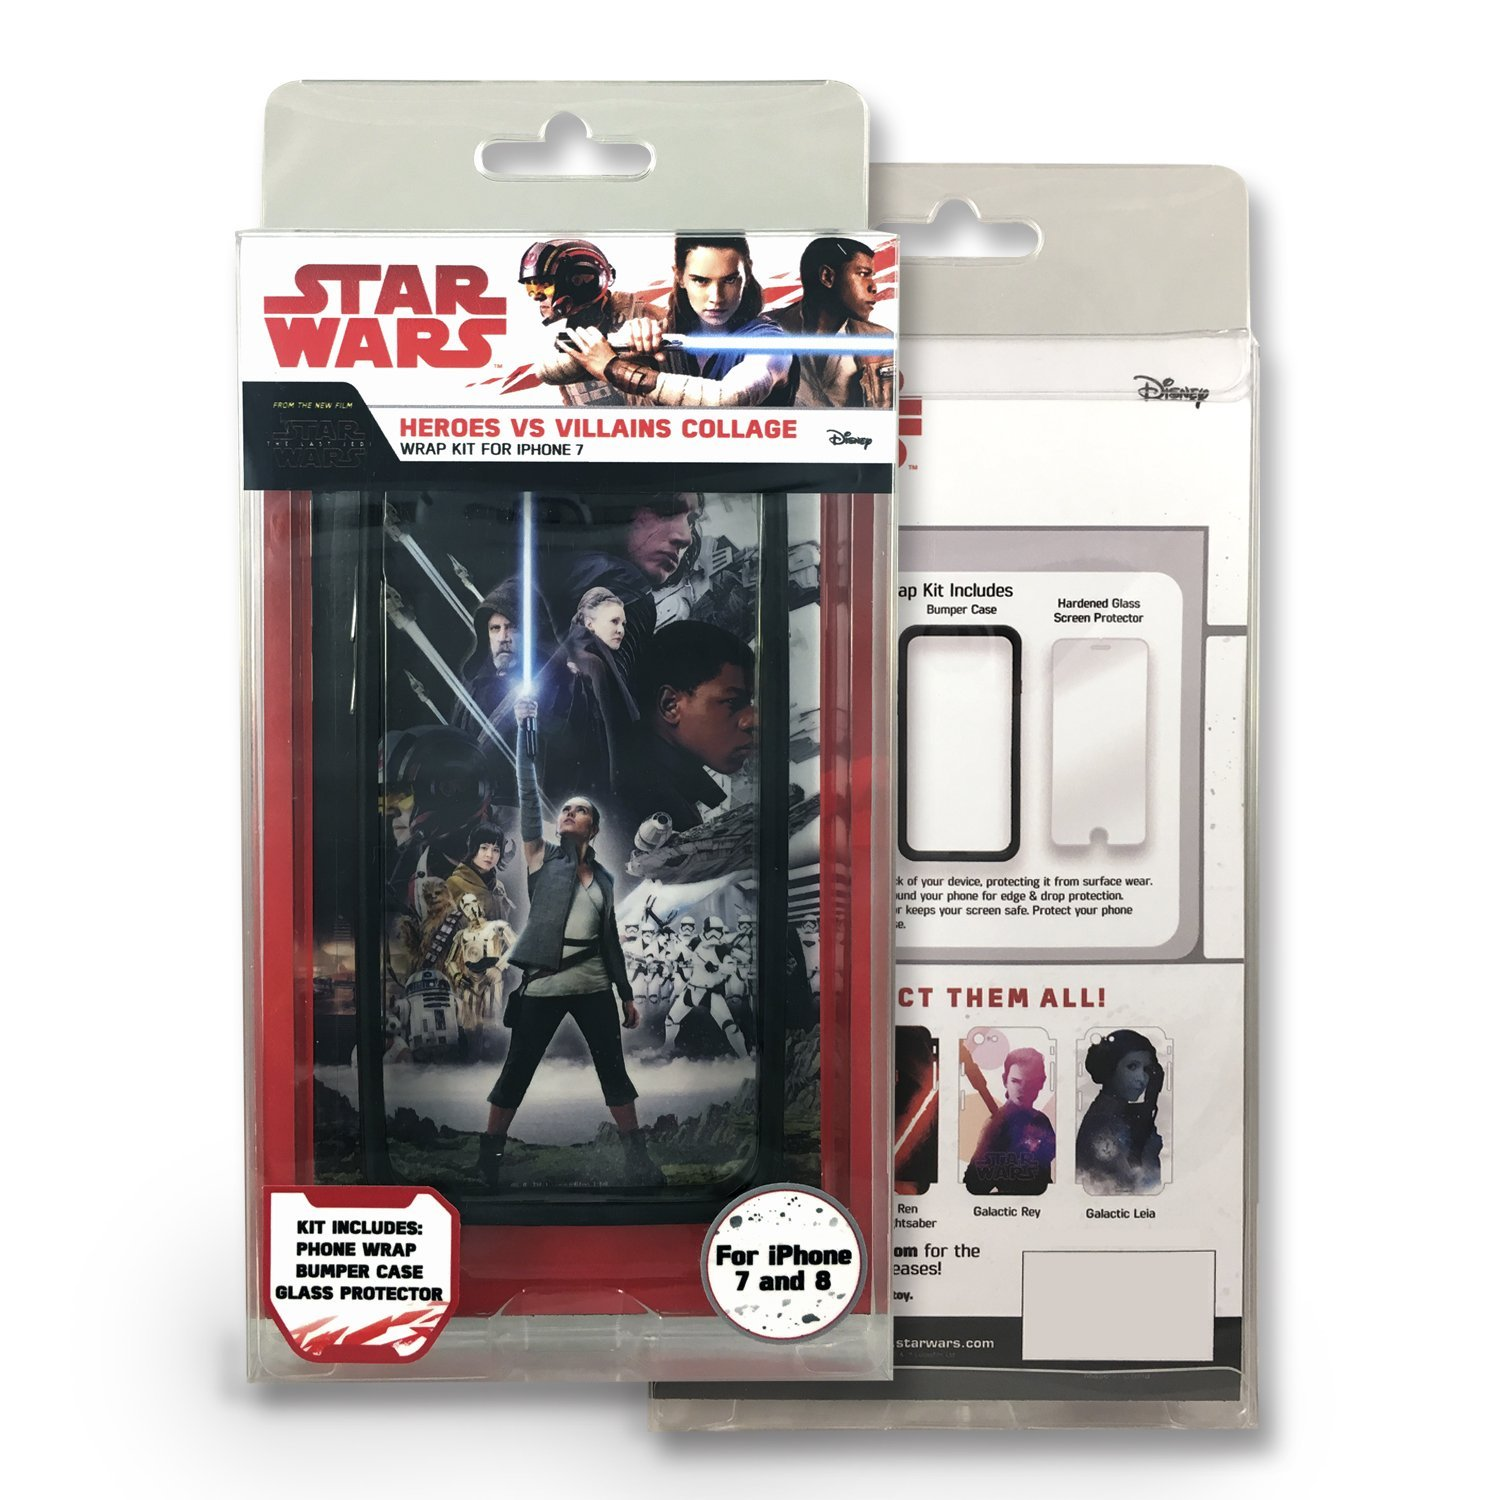 TLJ Heroes Vs. Villians Collage iPhone 7 & 8 Wrap Kit